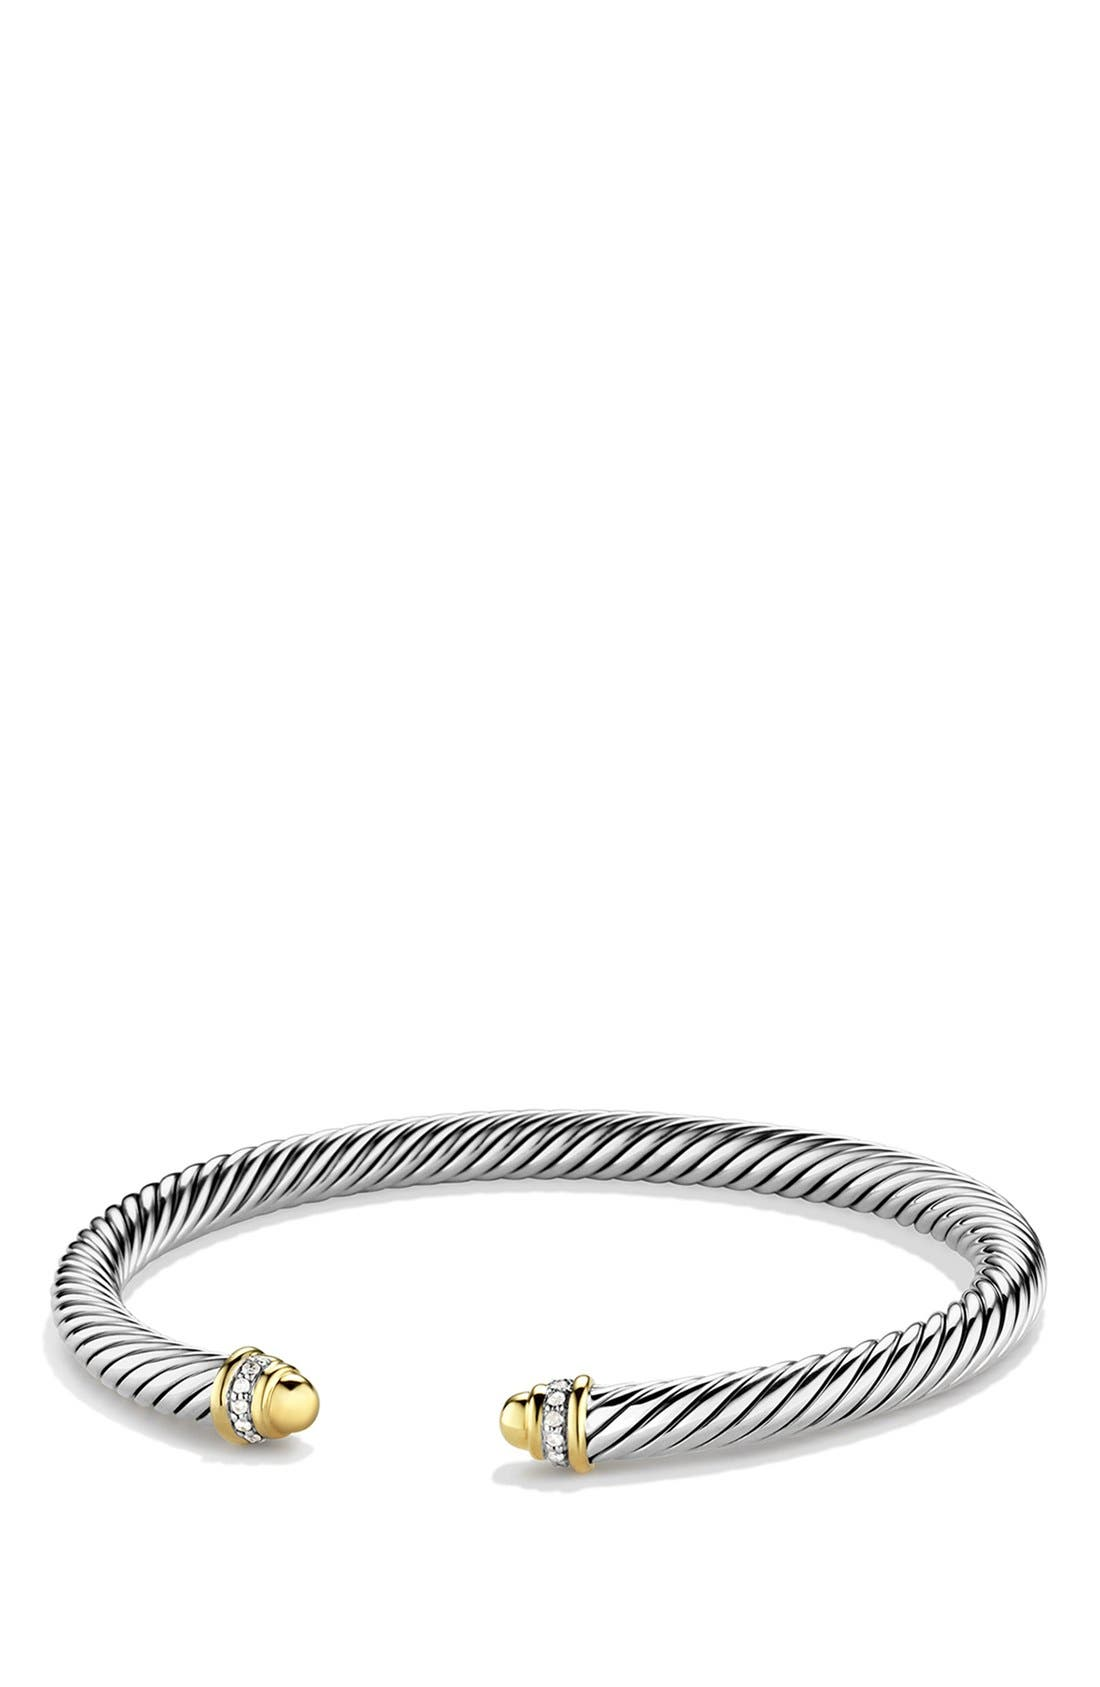 Cable Classics Bracelet with 18K Gold Domes & Diamonds, 5mm,                         Main,                         color, Gold Dome